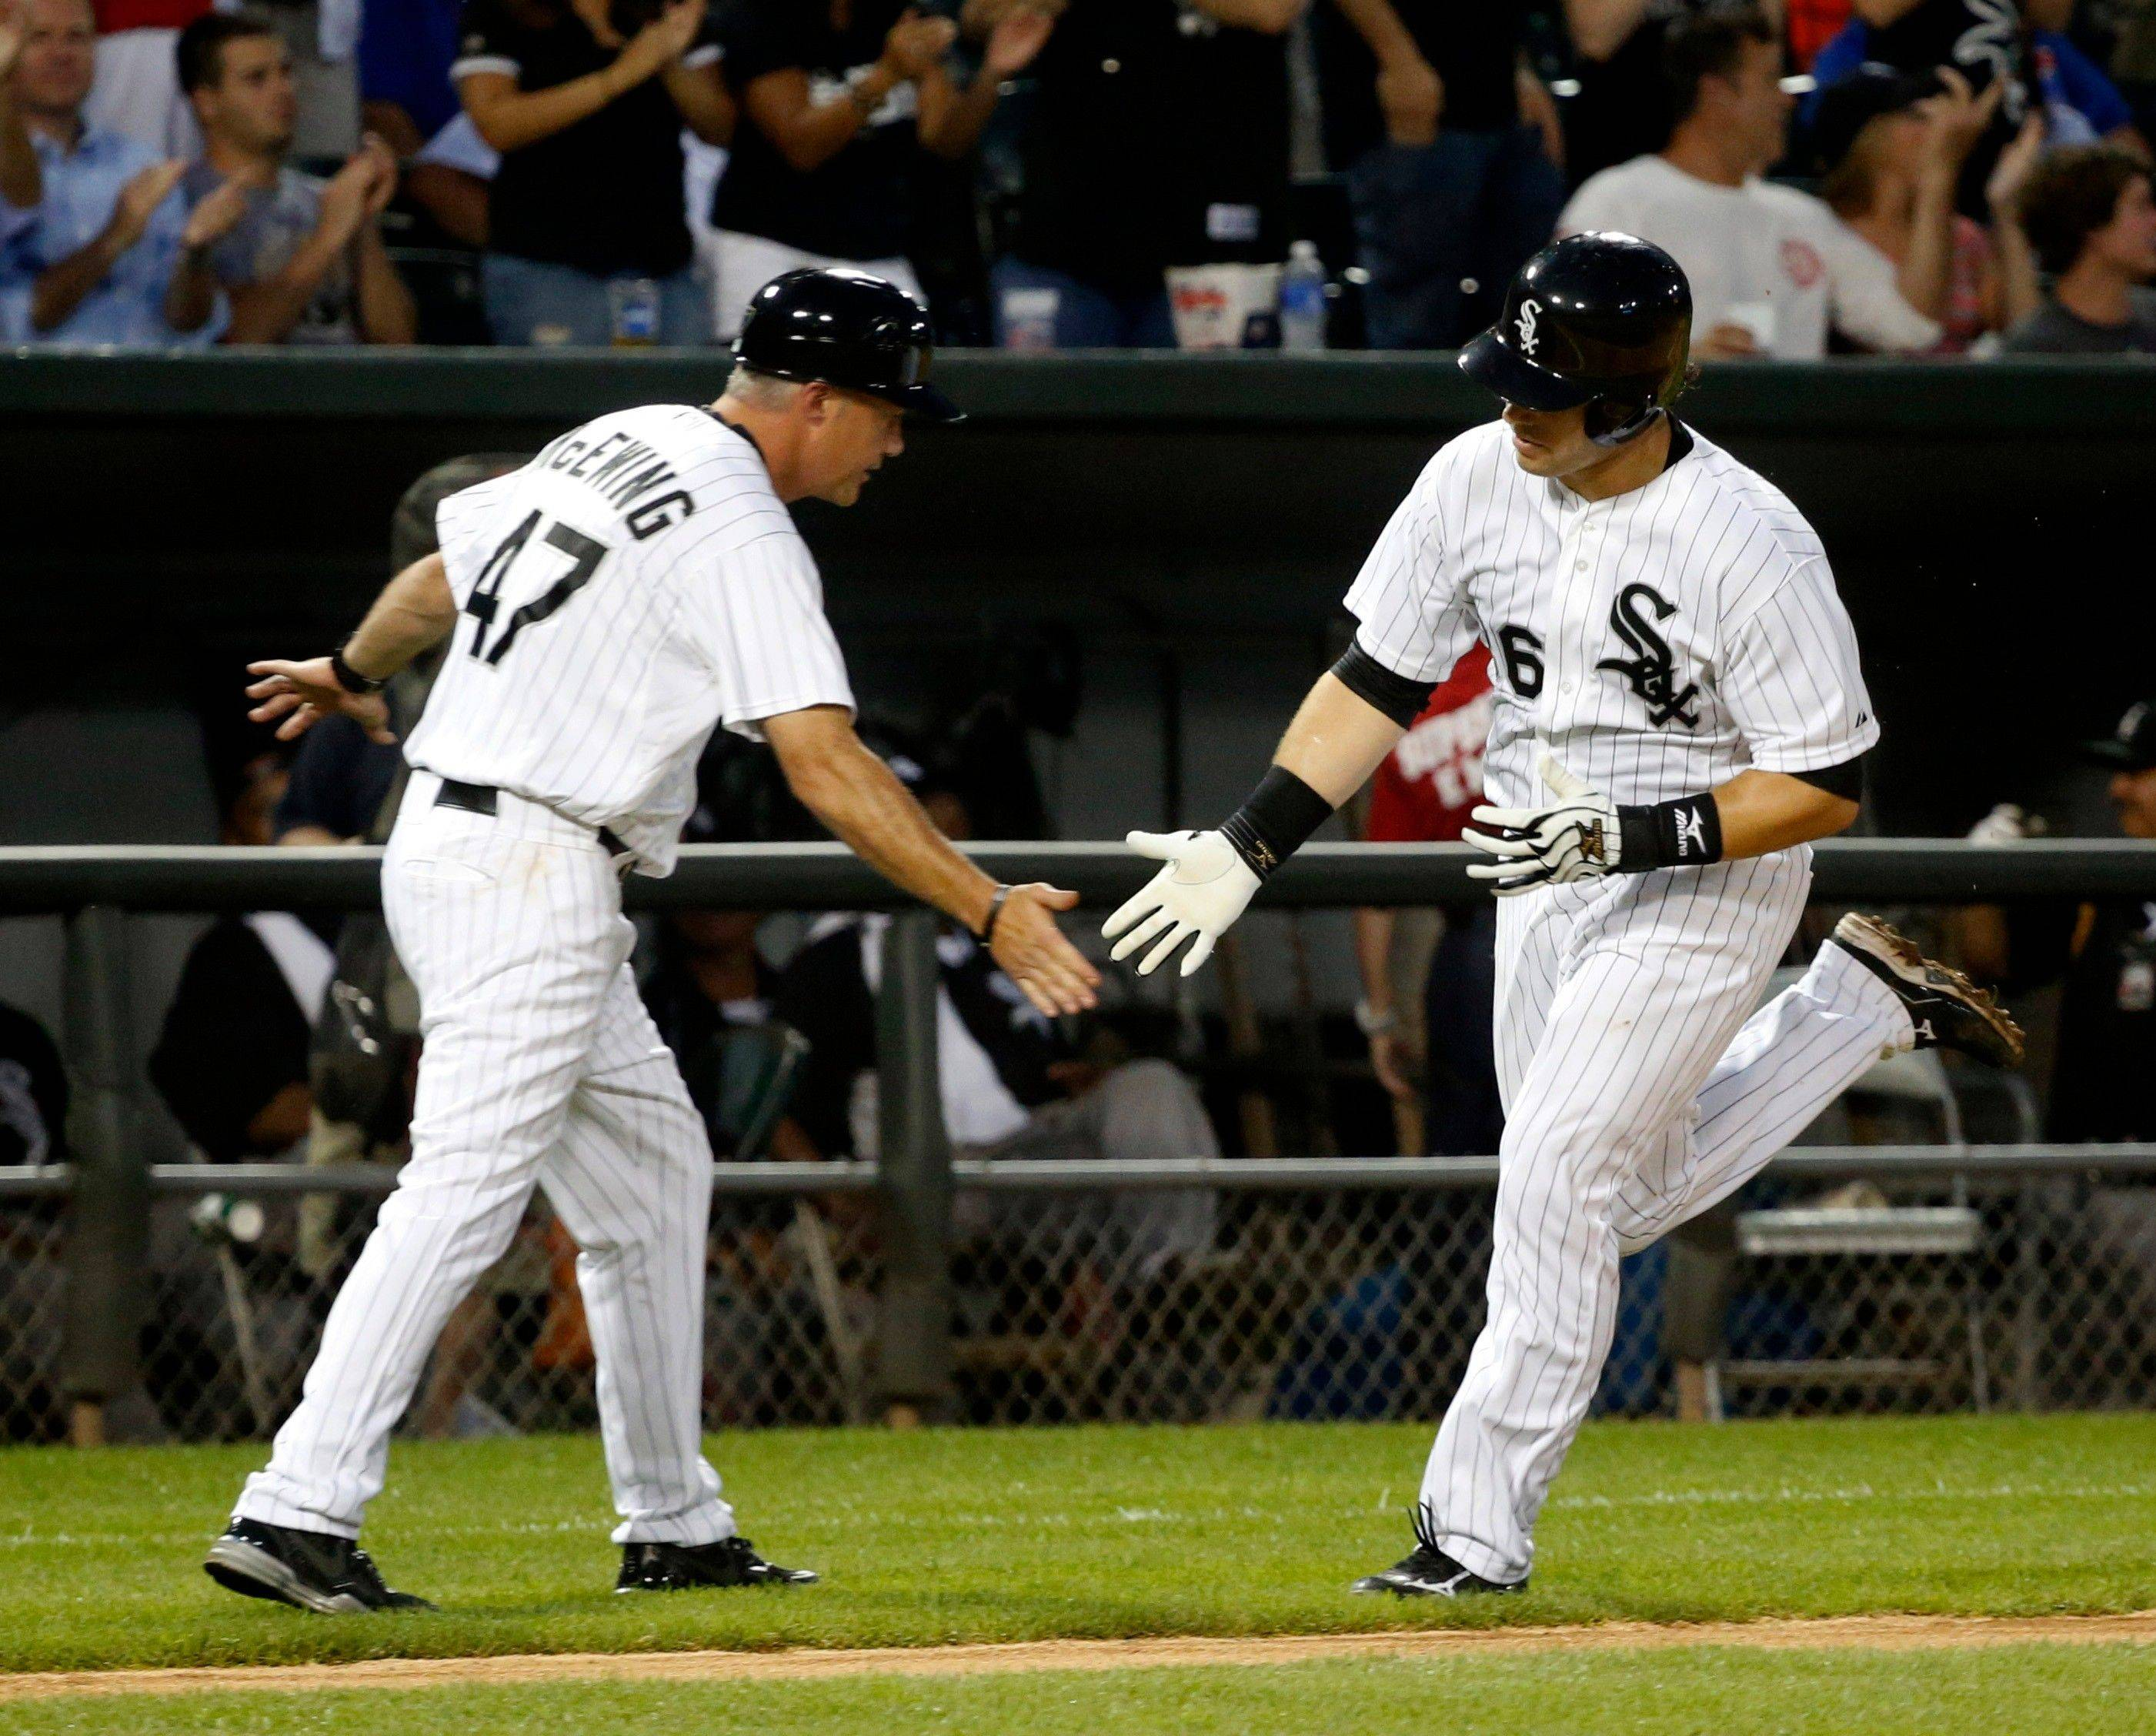 White Sox catcher Josh Phegley is greeted by third-base coach Joe McEwing after Phegley's home run off Cubs starting pitcher Matt Garza during the third inning of an interleague baseball game Monday night at U.S. Cellular Field.